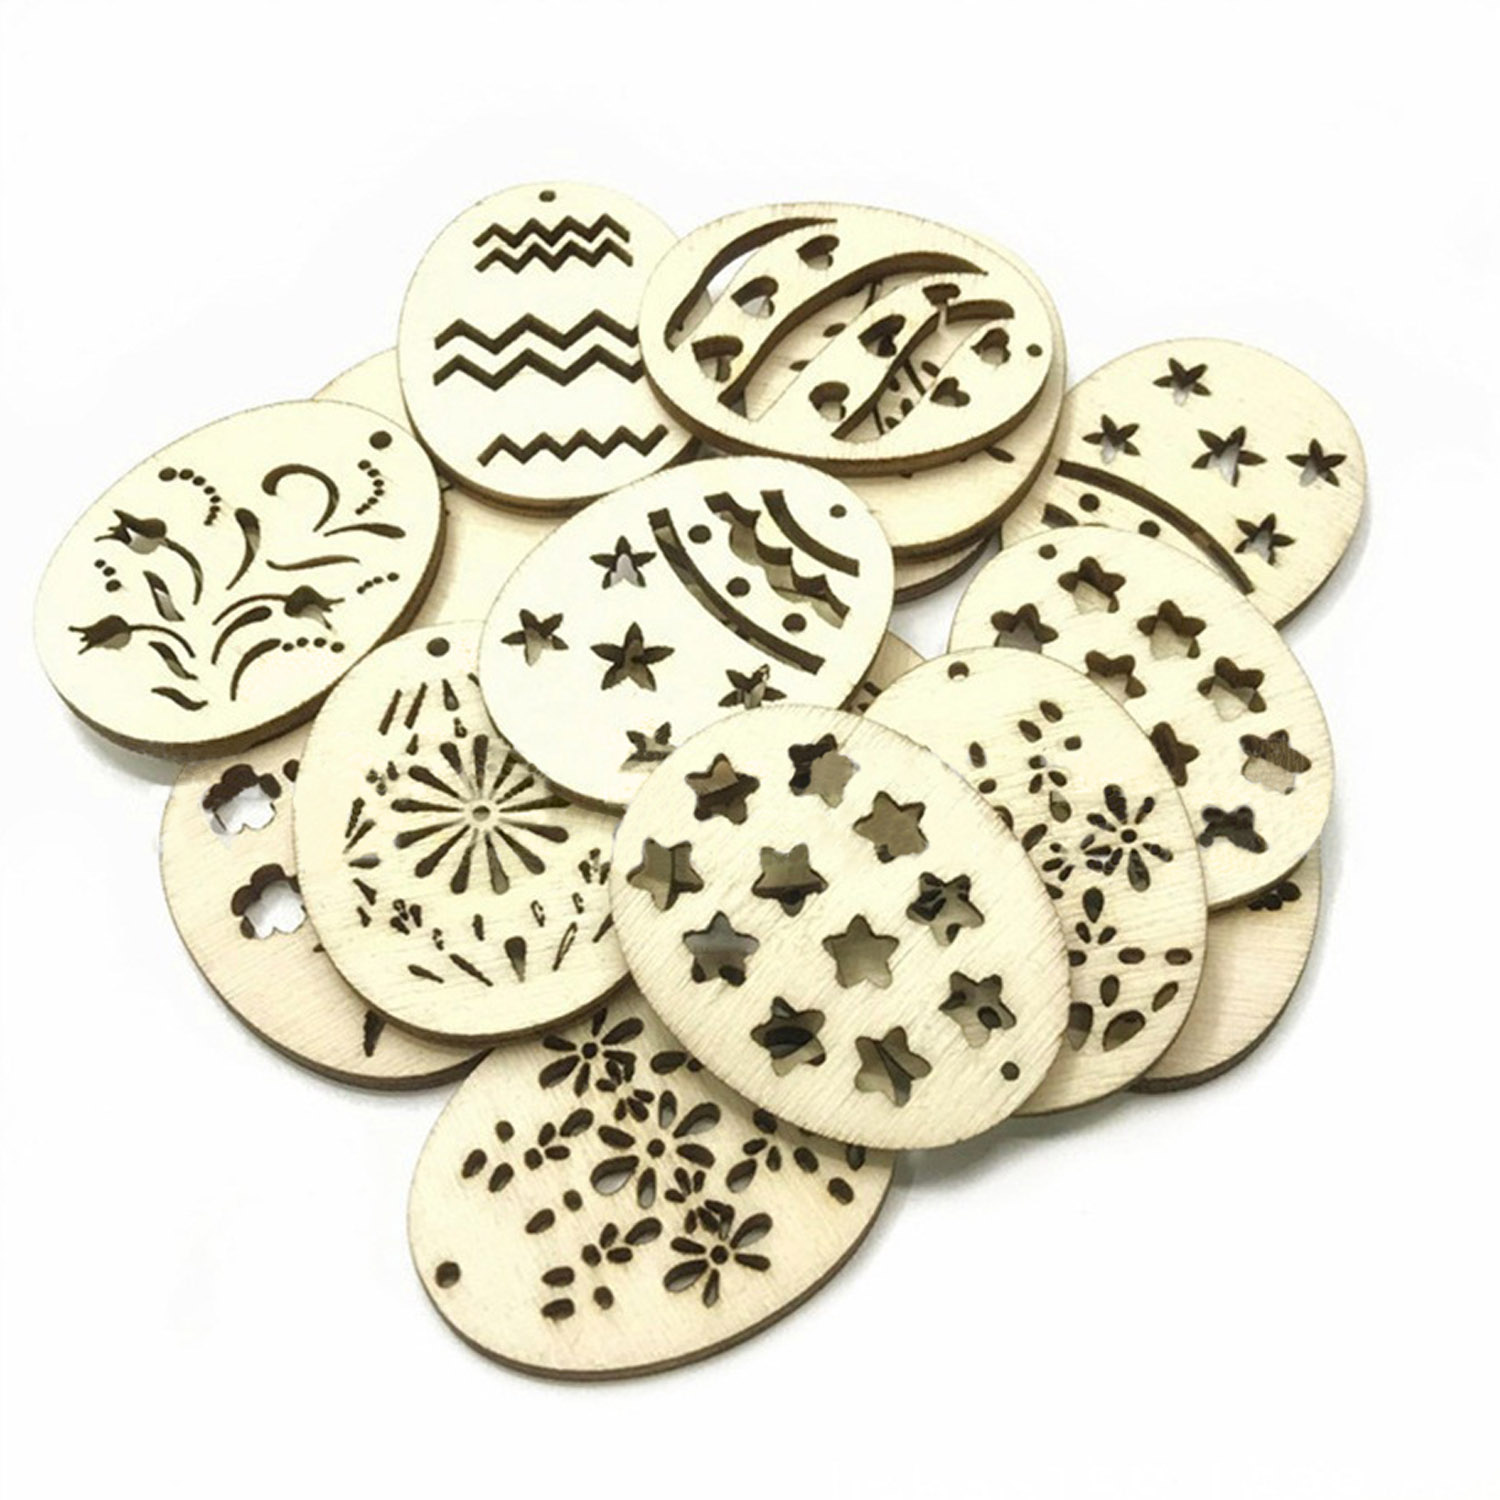 50PCS 40mm Fashion Hollow Out Easter Eggs Wooden Pendants Decor DIY Craft  Scrapbook DIY Wood Chips Easter Eggs Hanging Ornament